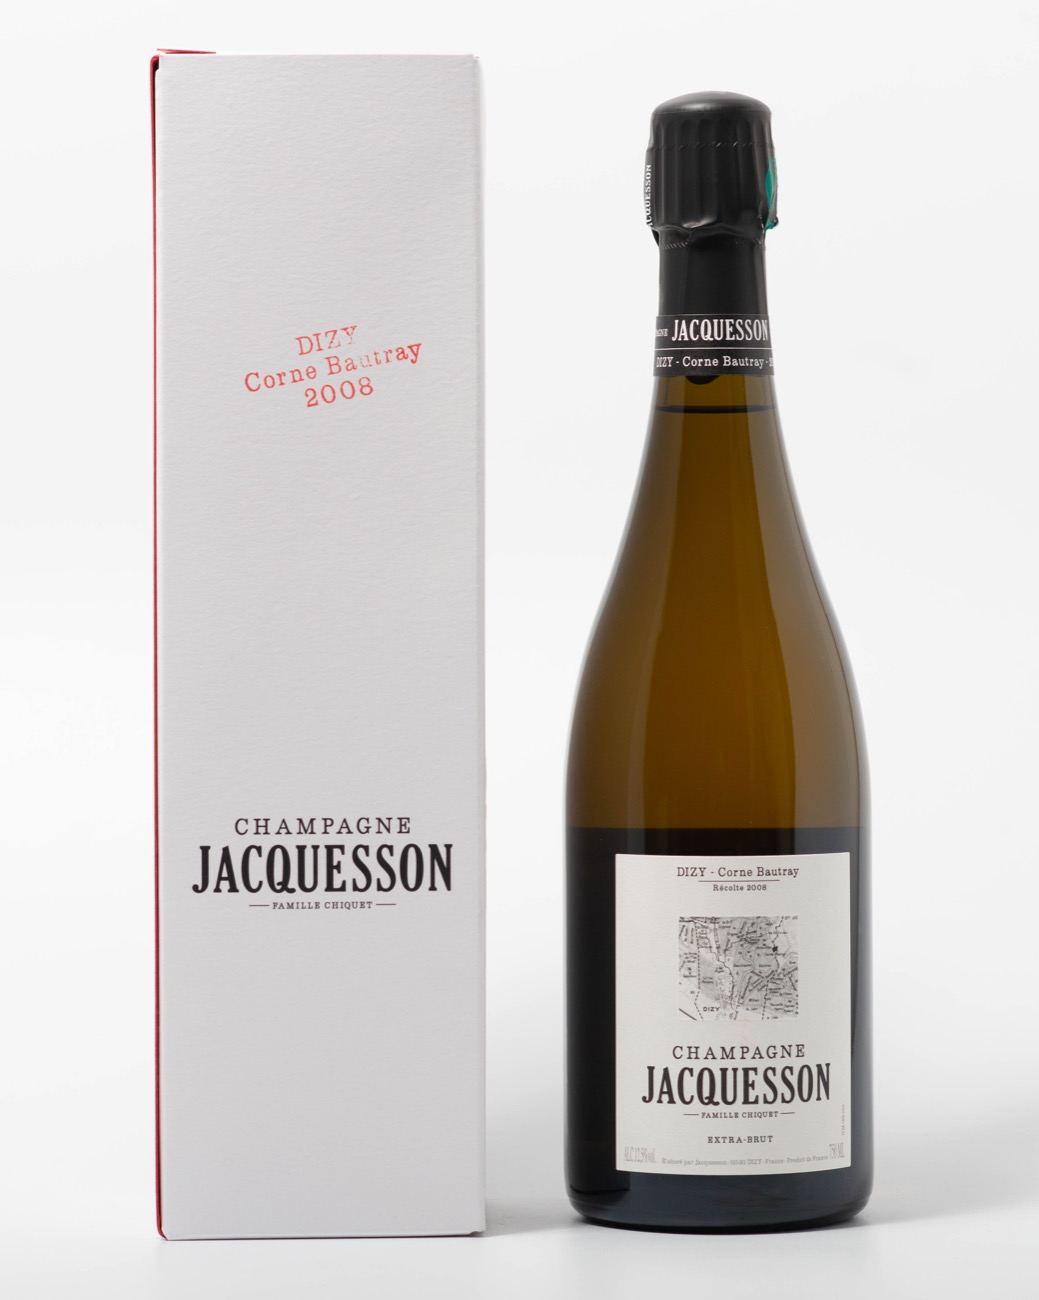 Jacquesson sizy corne bautray 2008 3